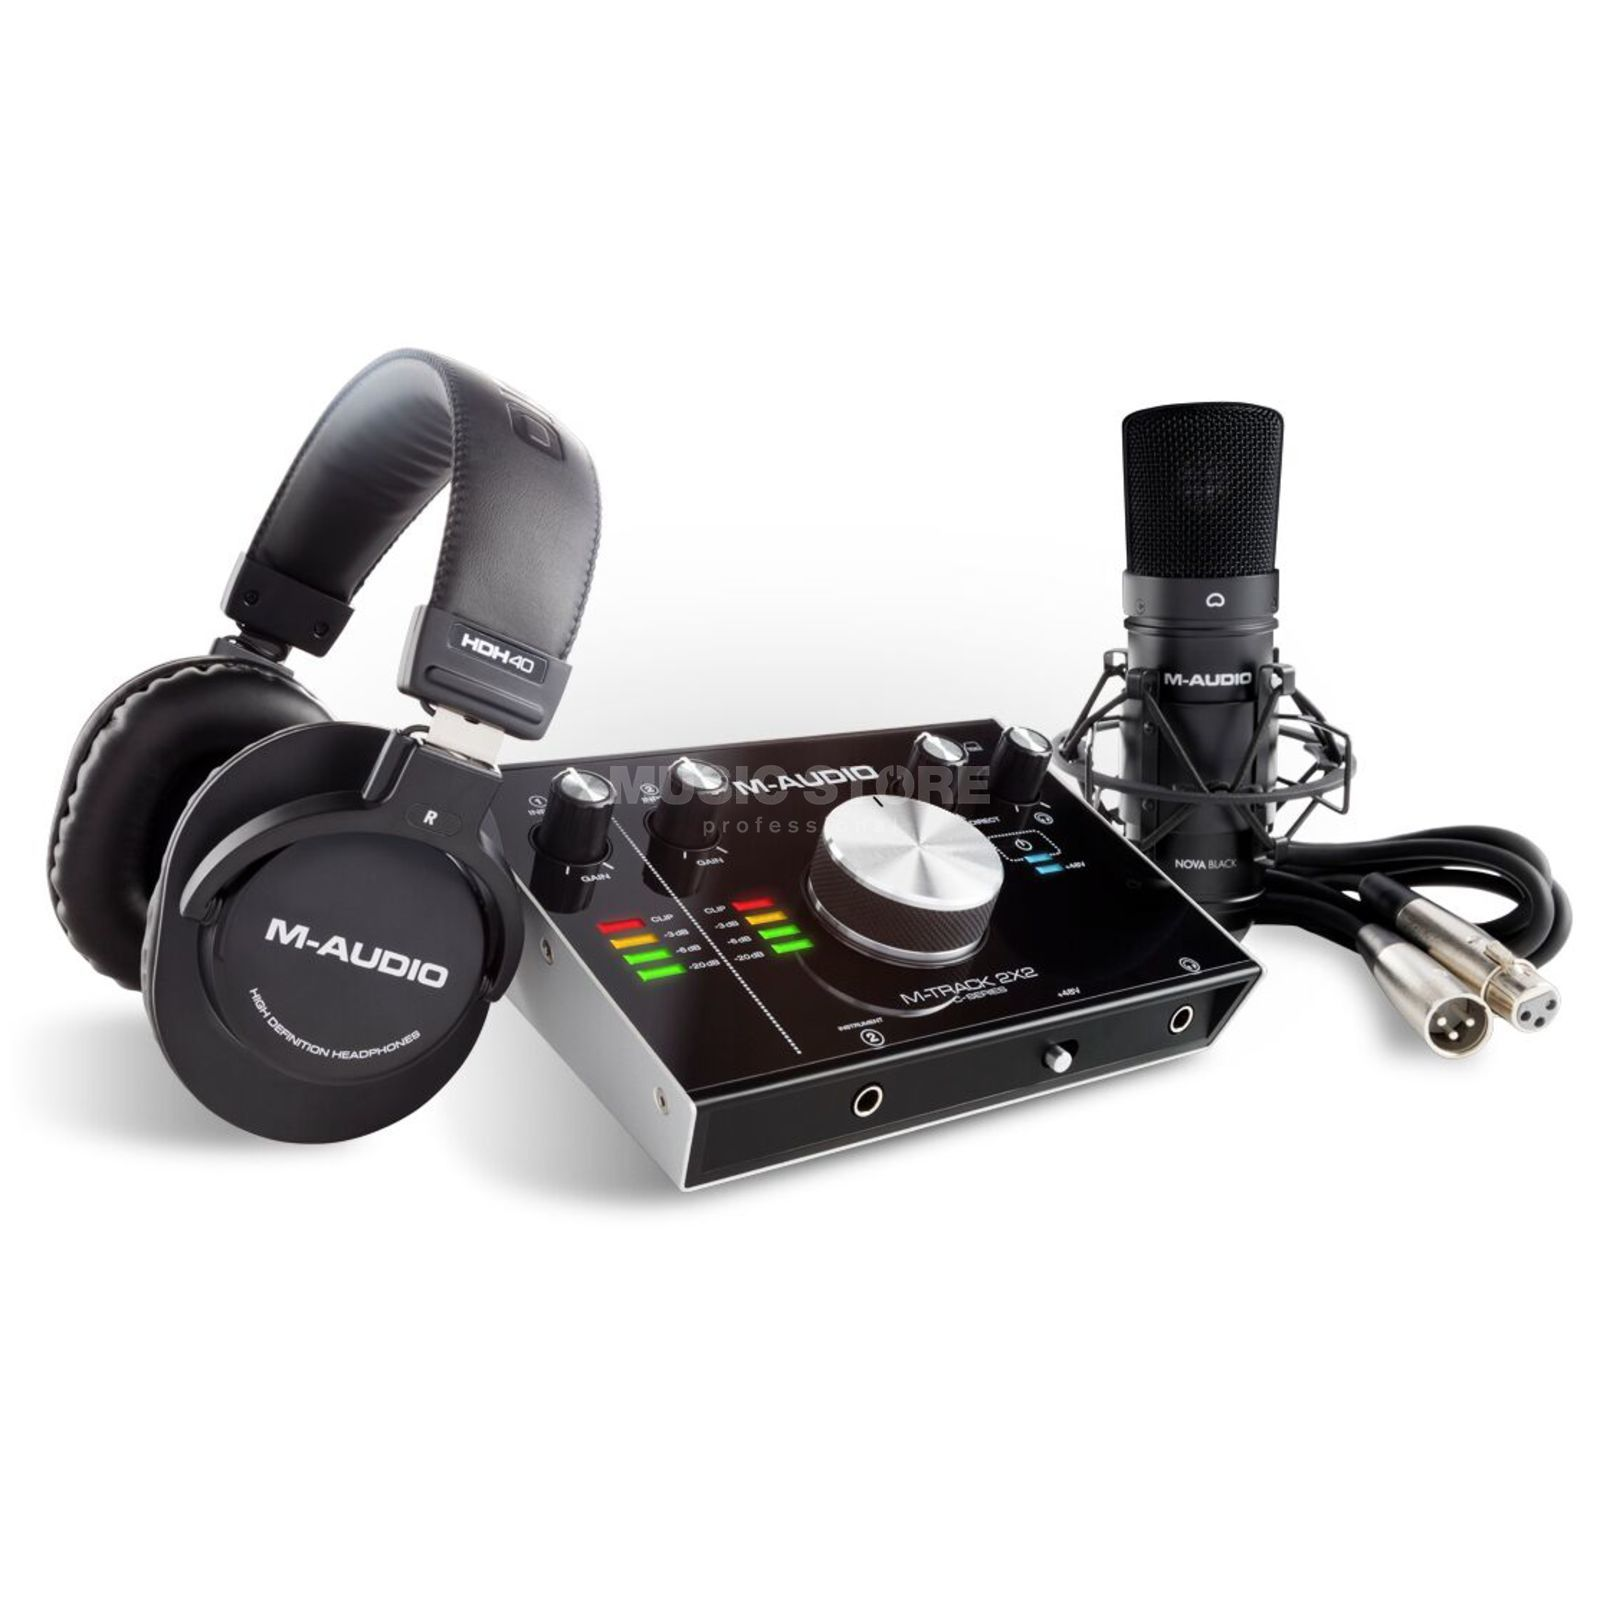 M-Audio M-Track 2x2 Vocal Studio Pro Product Image